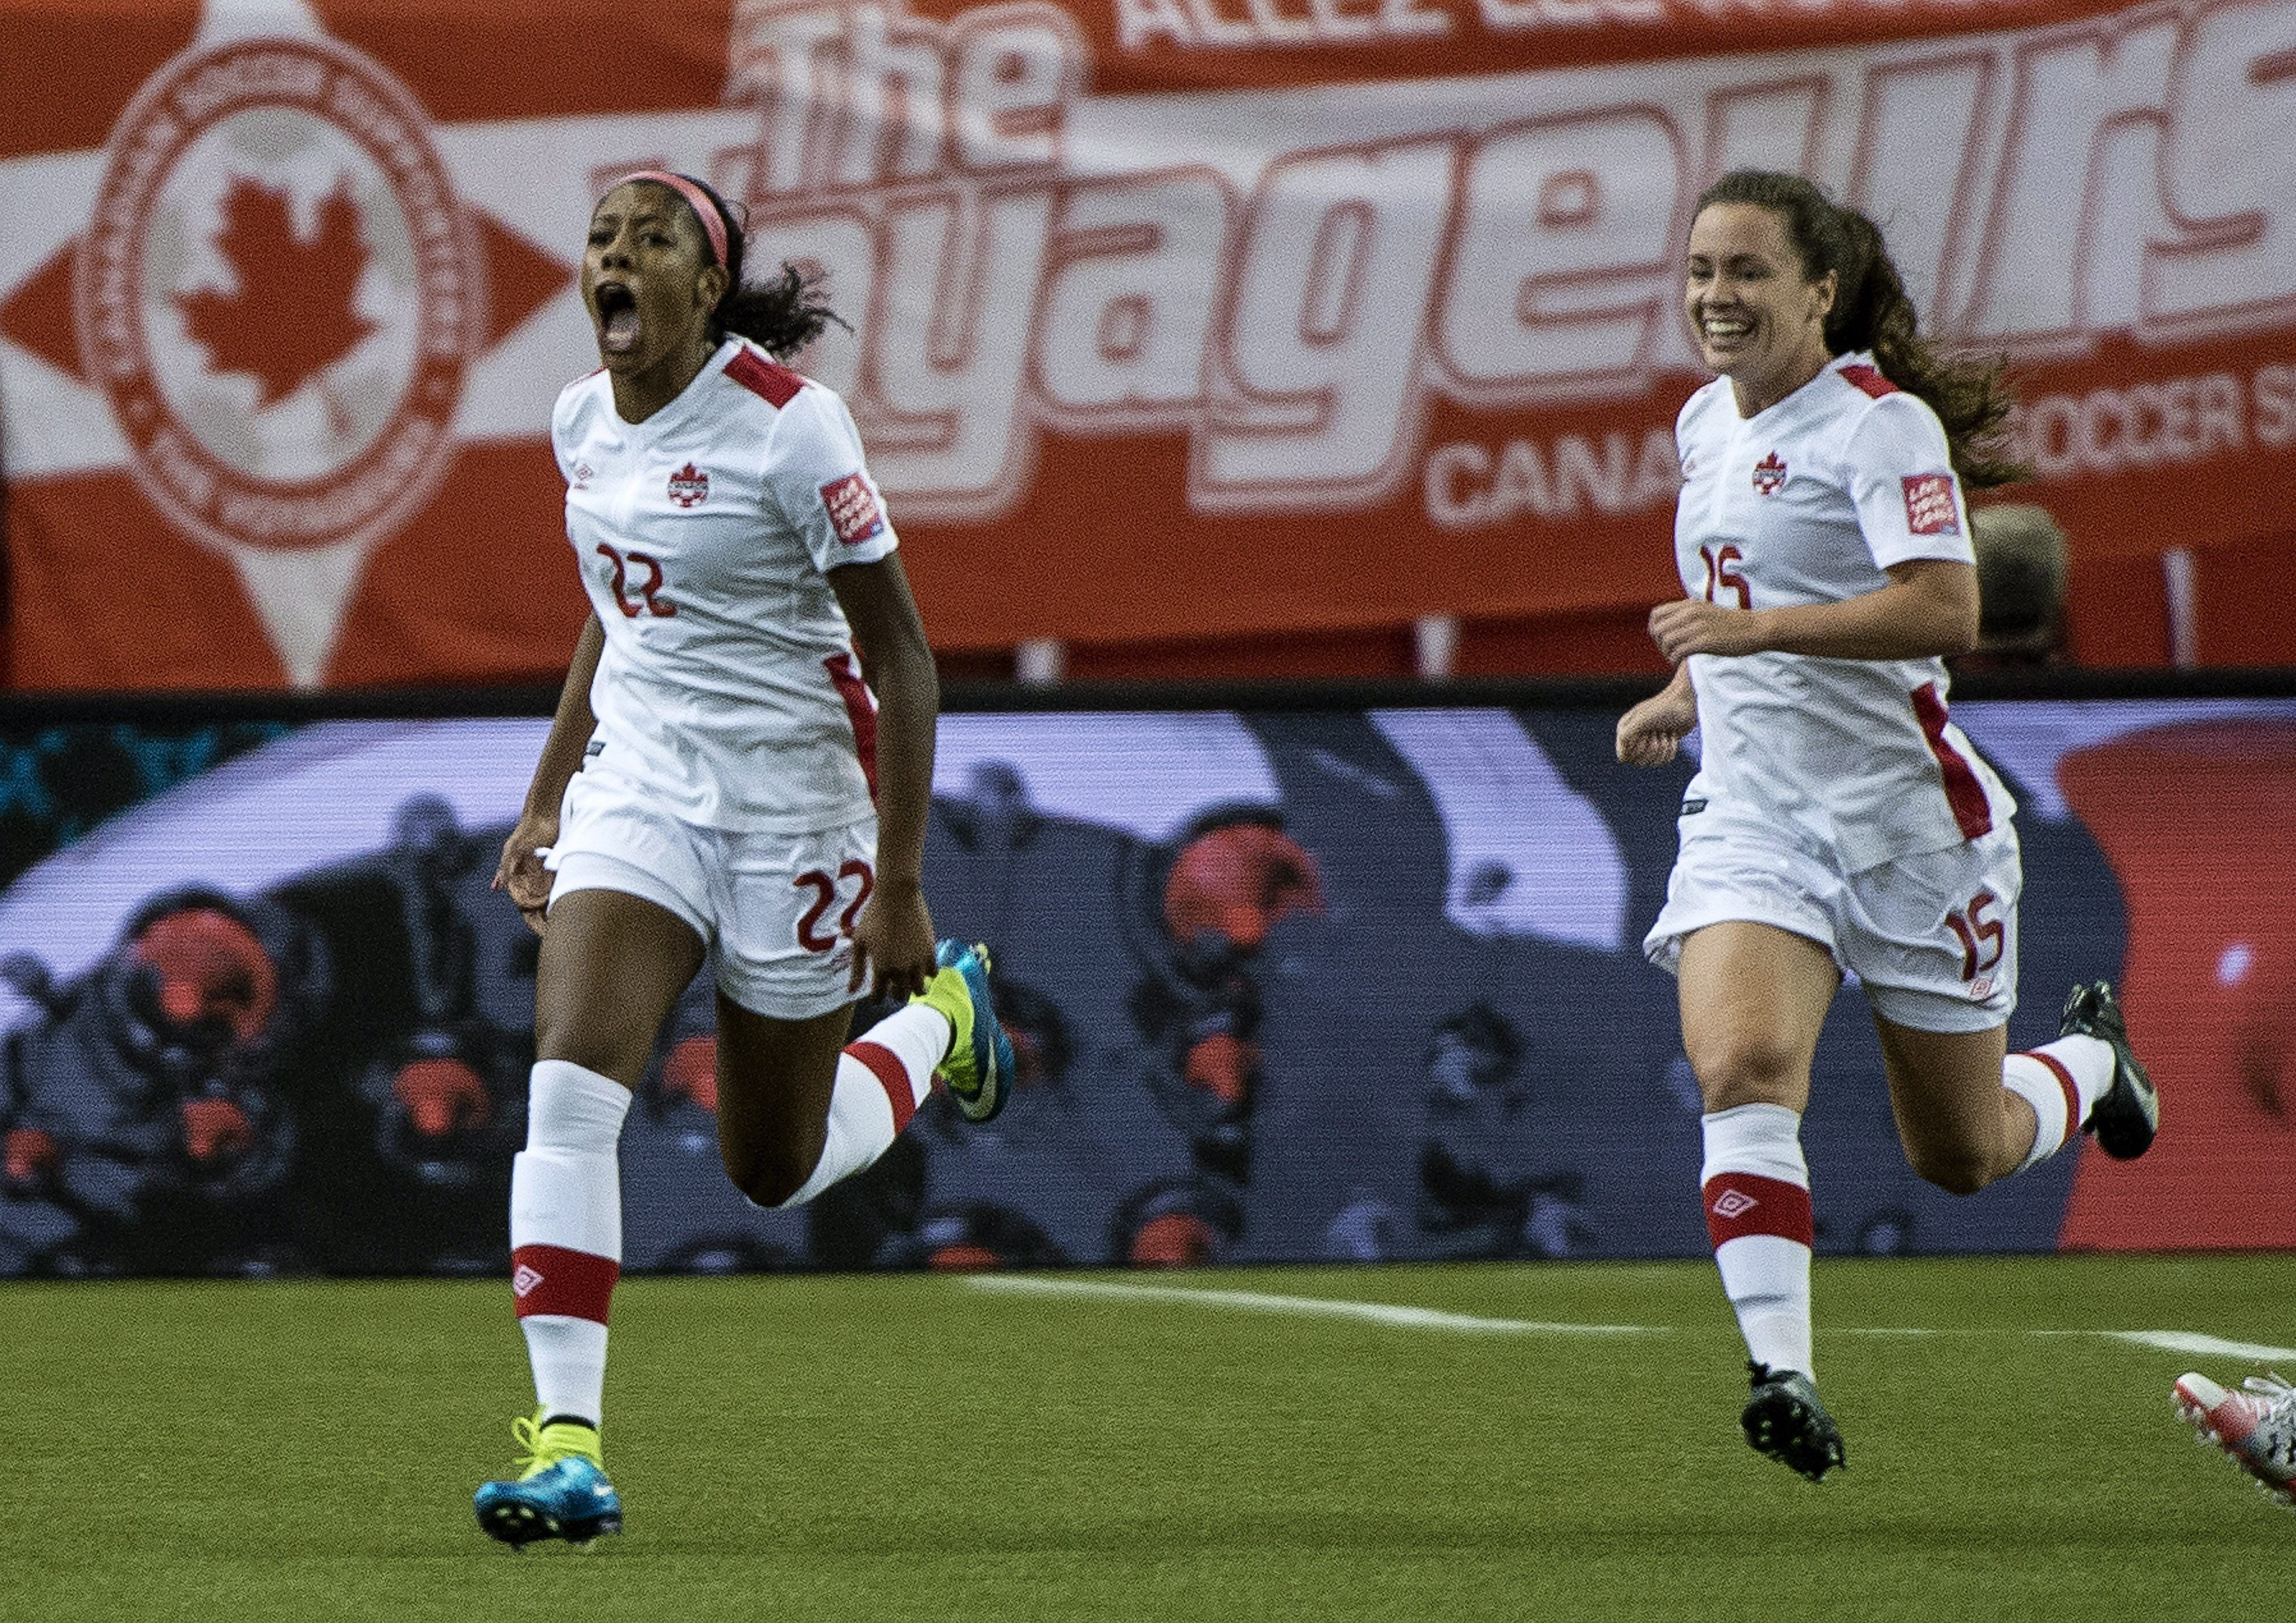 England's Sampson Expects 'Tight' Women's World Cup Quarterfinal Against Canada